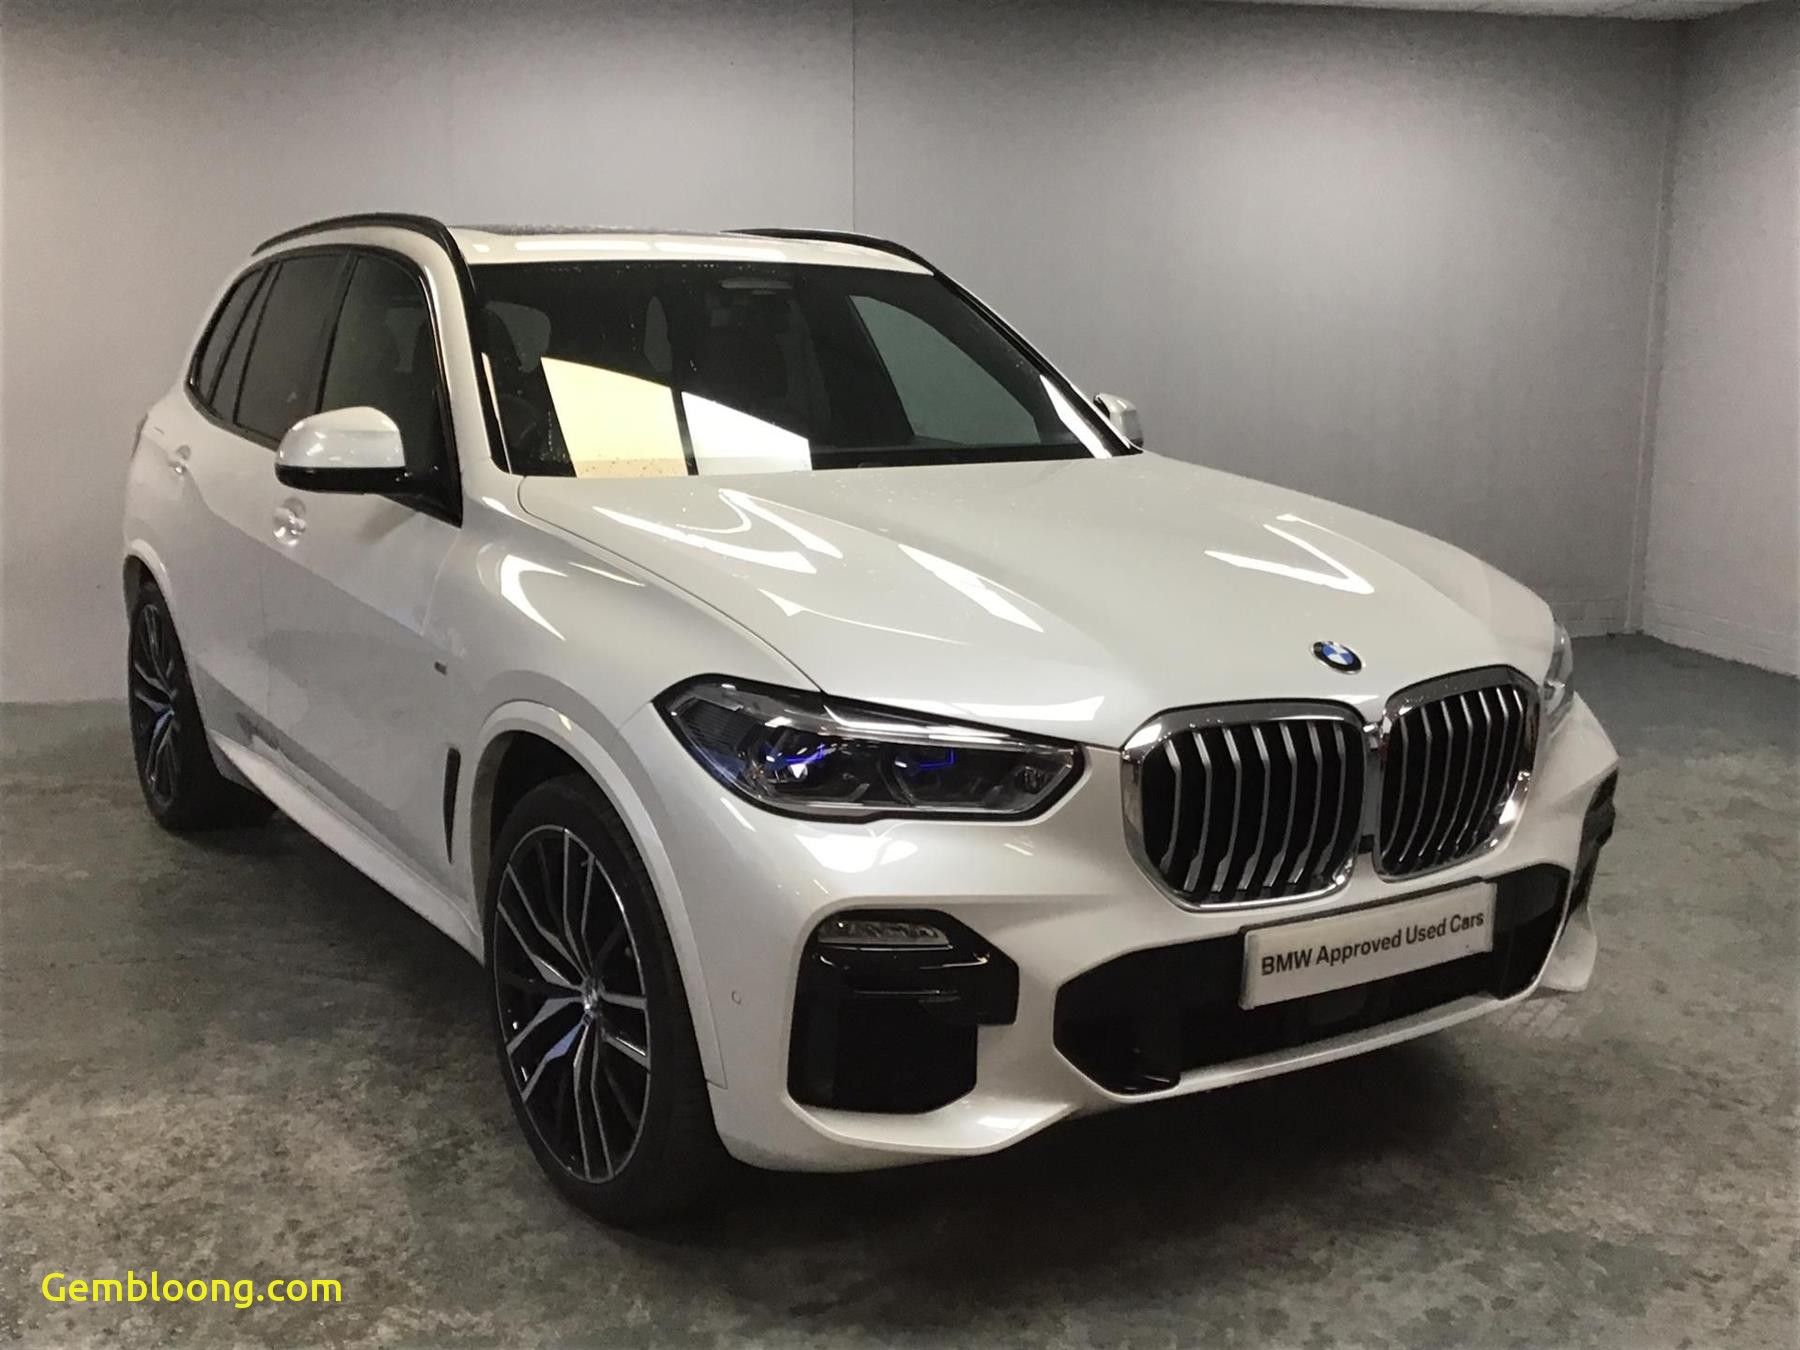 Cars for Sale Near Me Trade In Fresh Used Bmw X5 Cars for Sale with Pistonheads